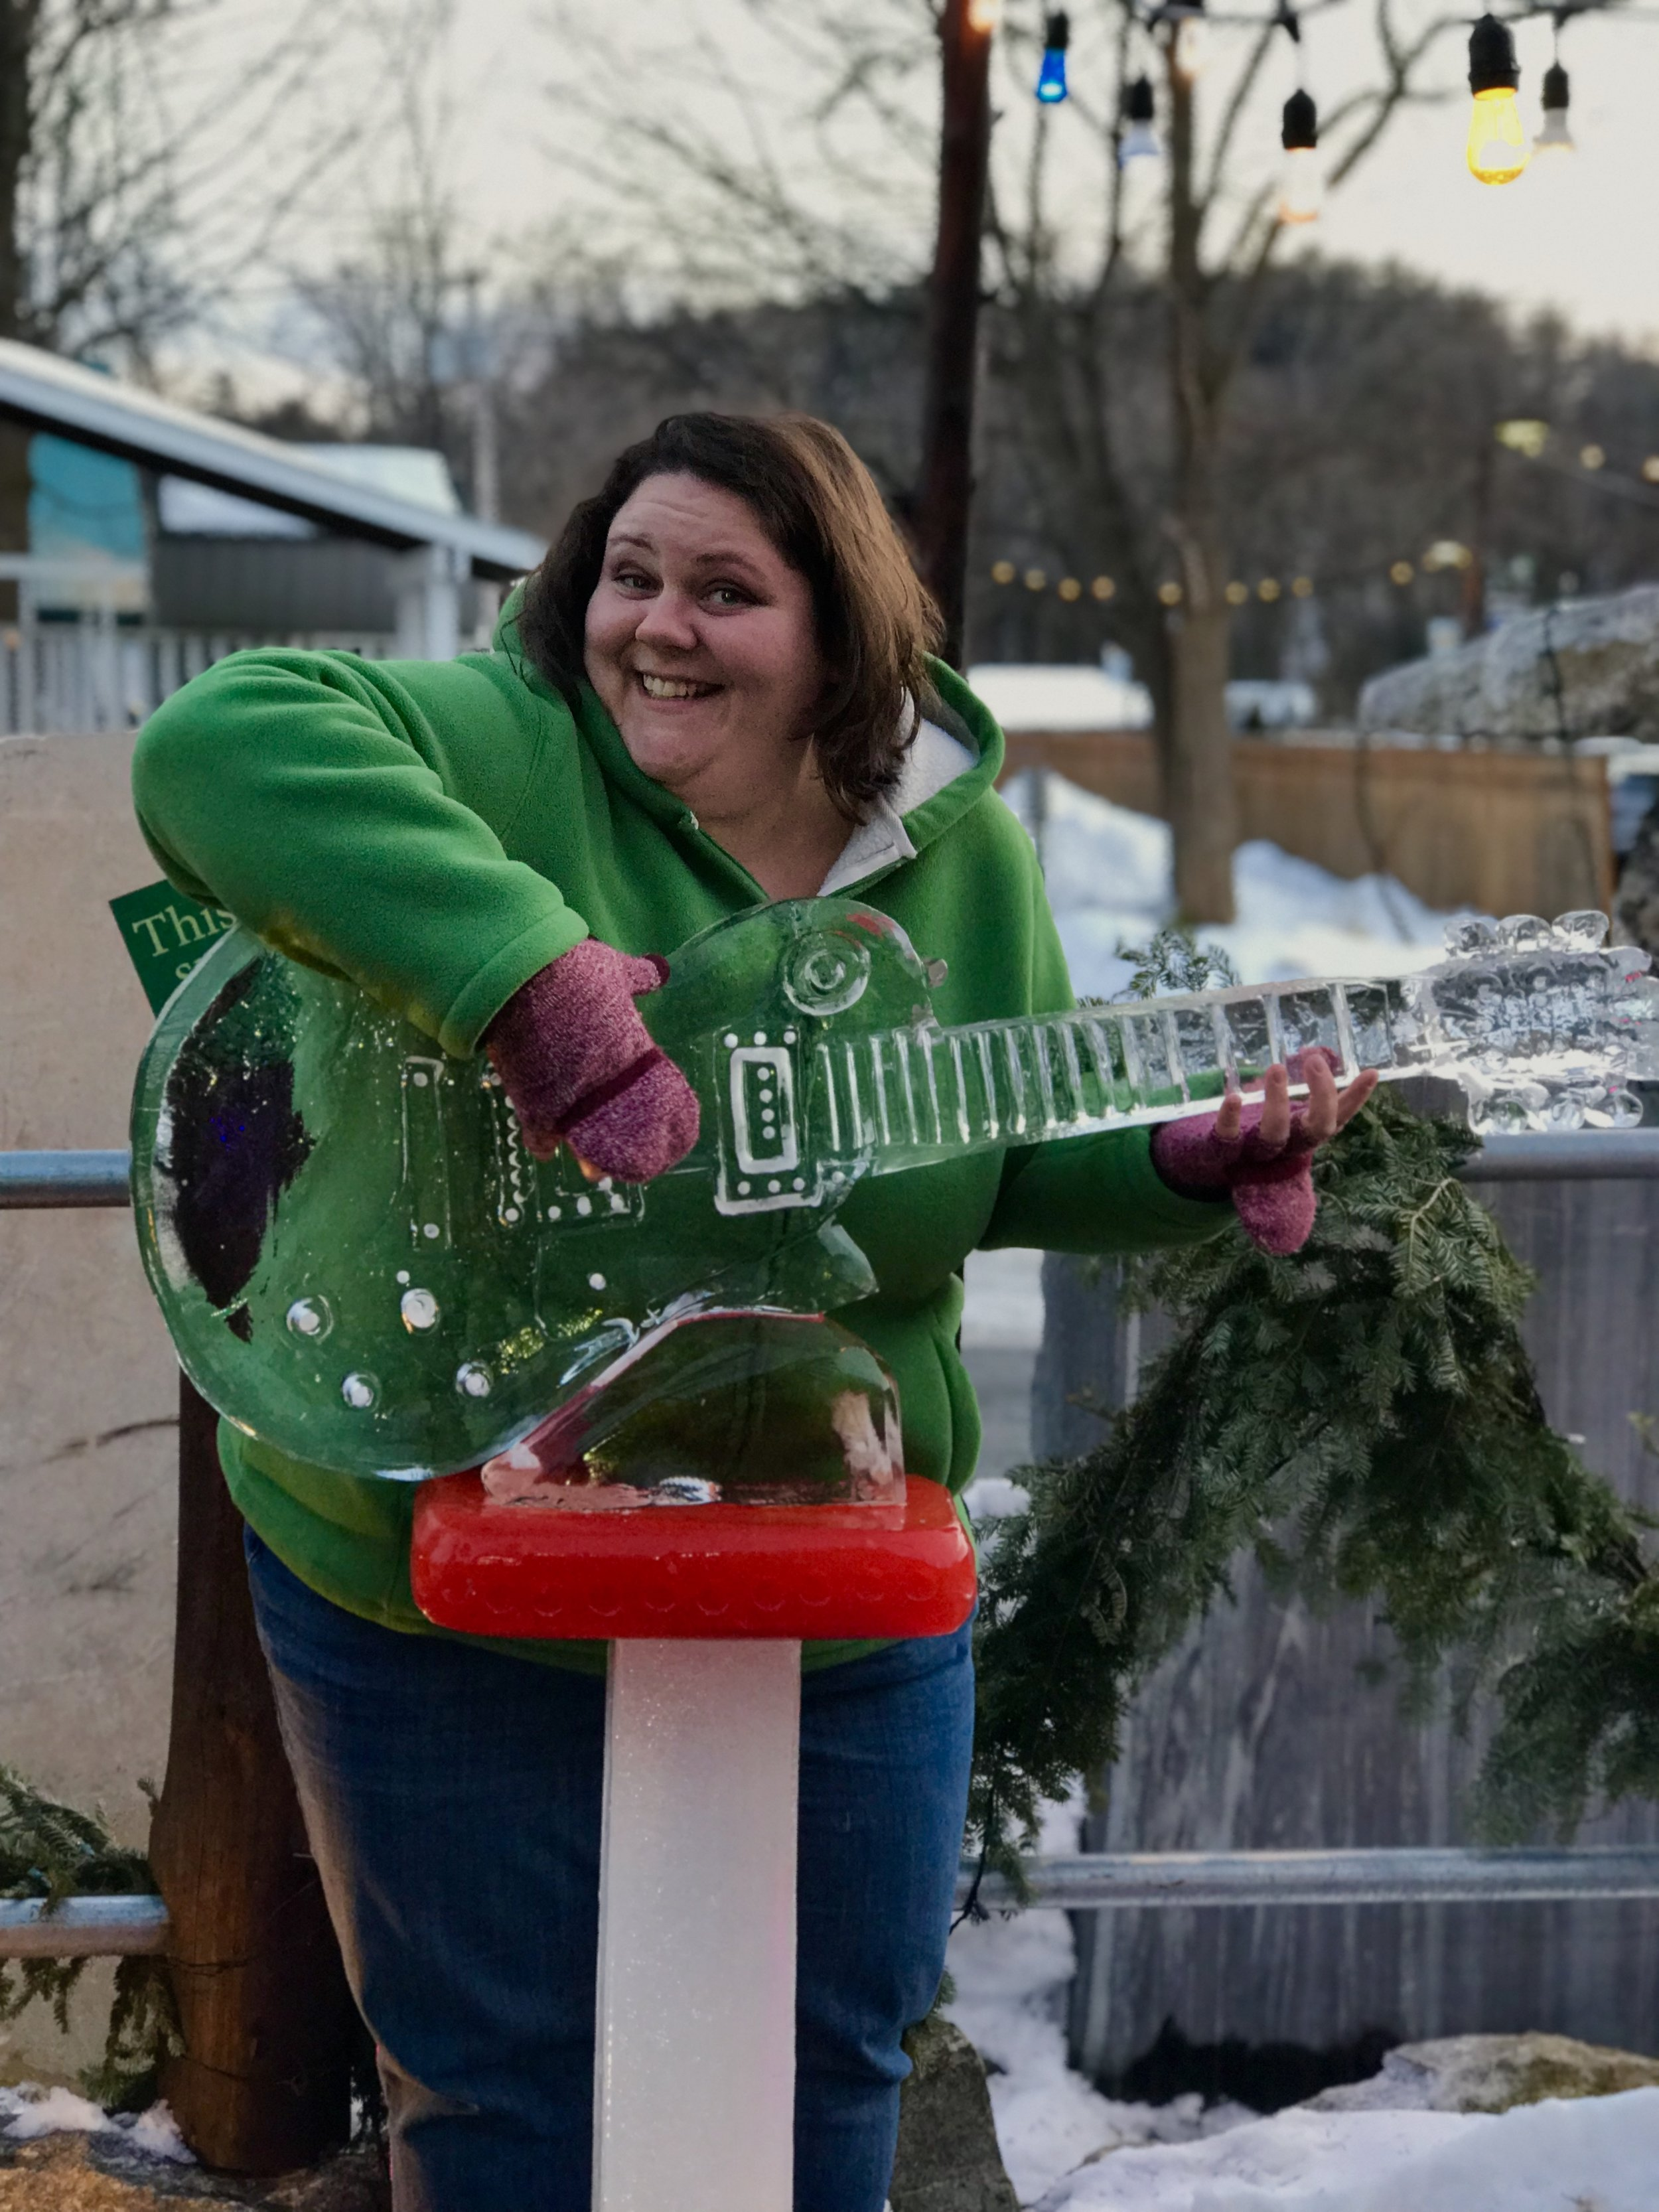 Had fun slappin' da bass - the ice bass that is - at Funky Ice Fest in Lake George, NY. c. January 2019